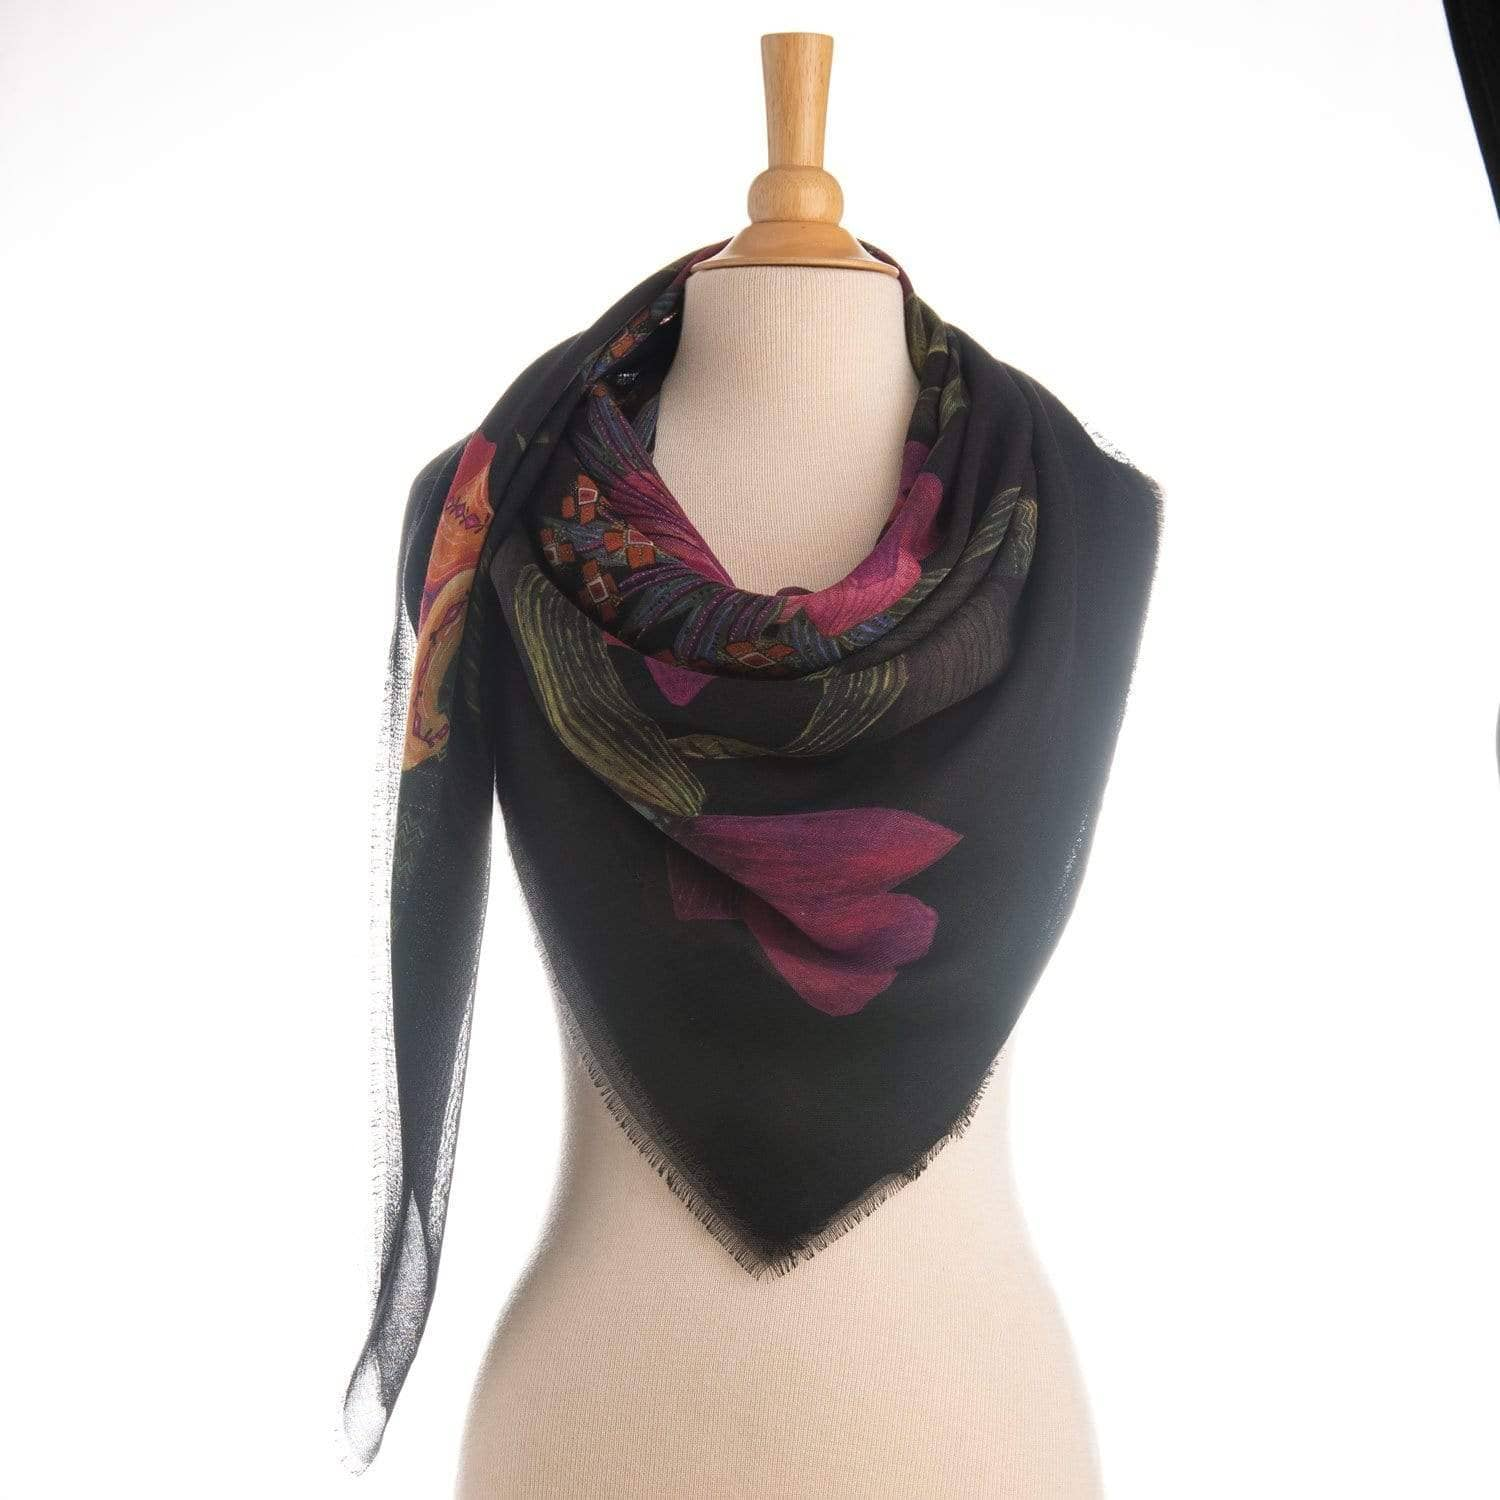 Made in Italy floral scarf